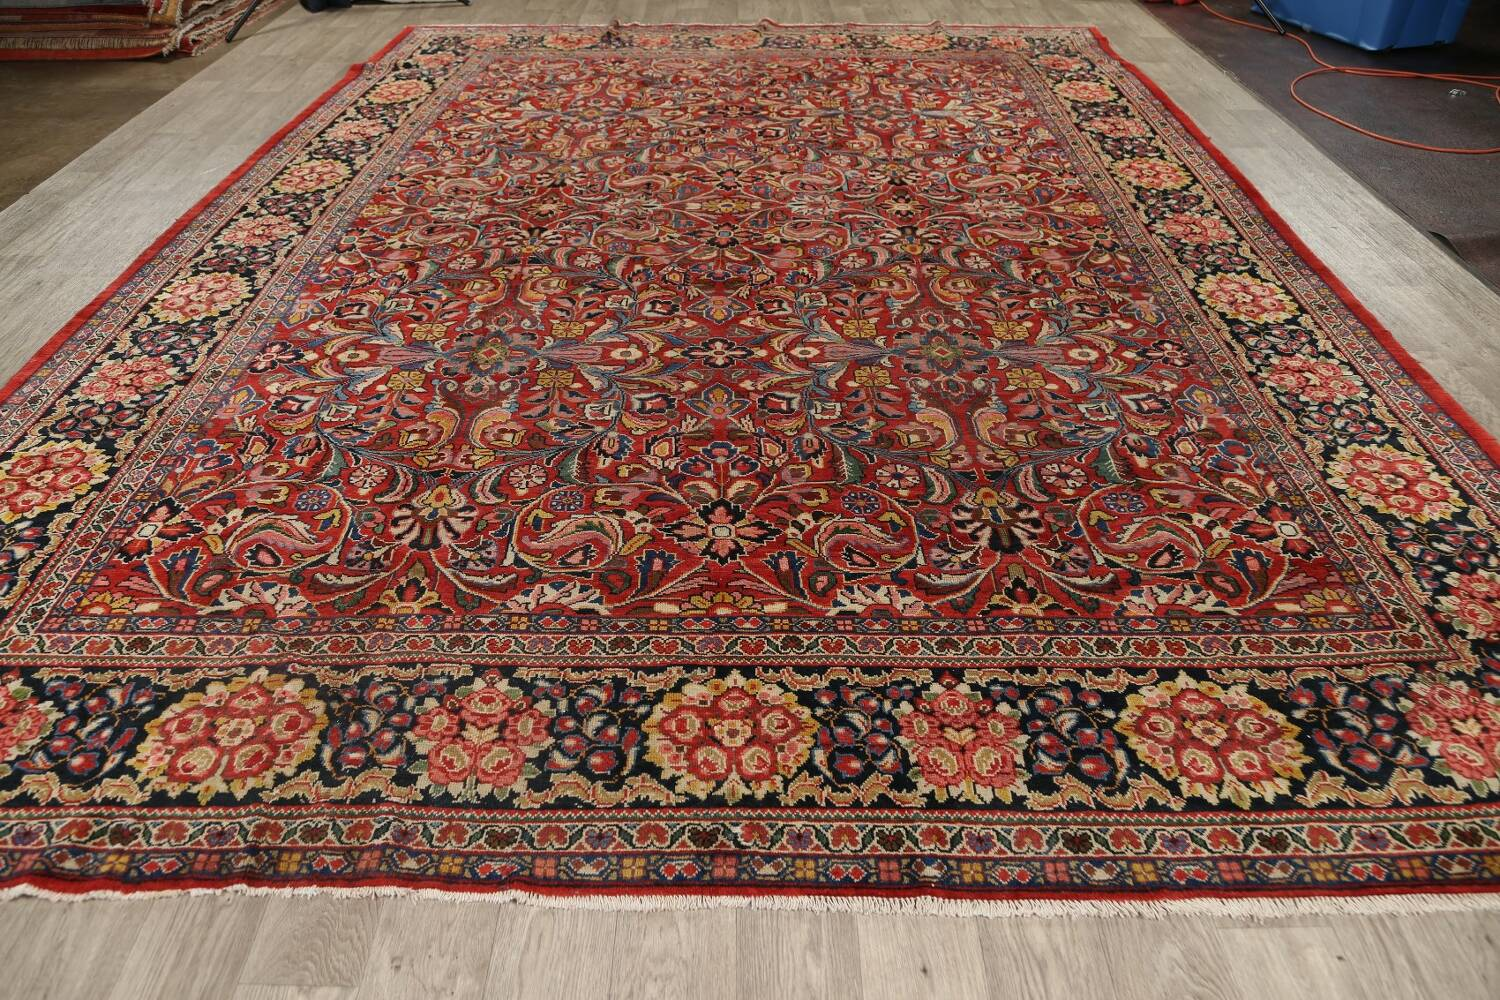 Antique Vegetable Dye Sultanabad Persian Area Rug 10x14 image 20